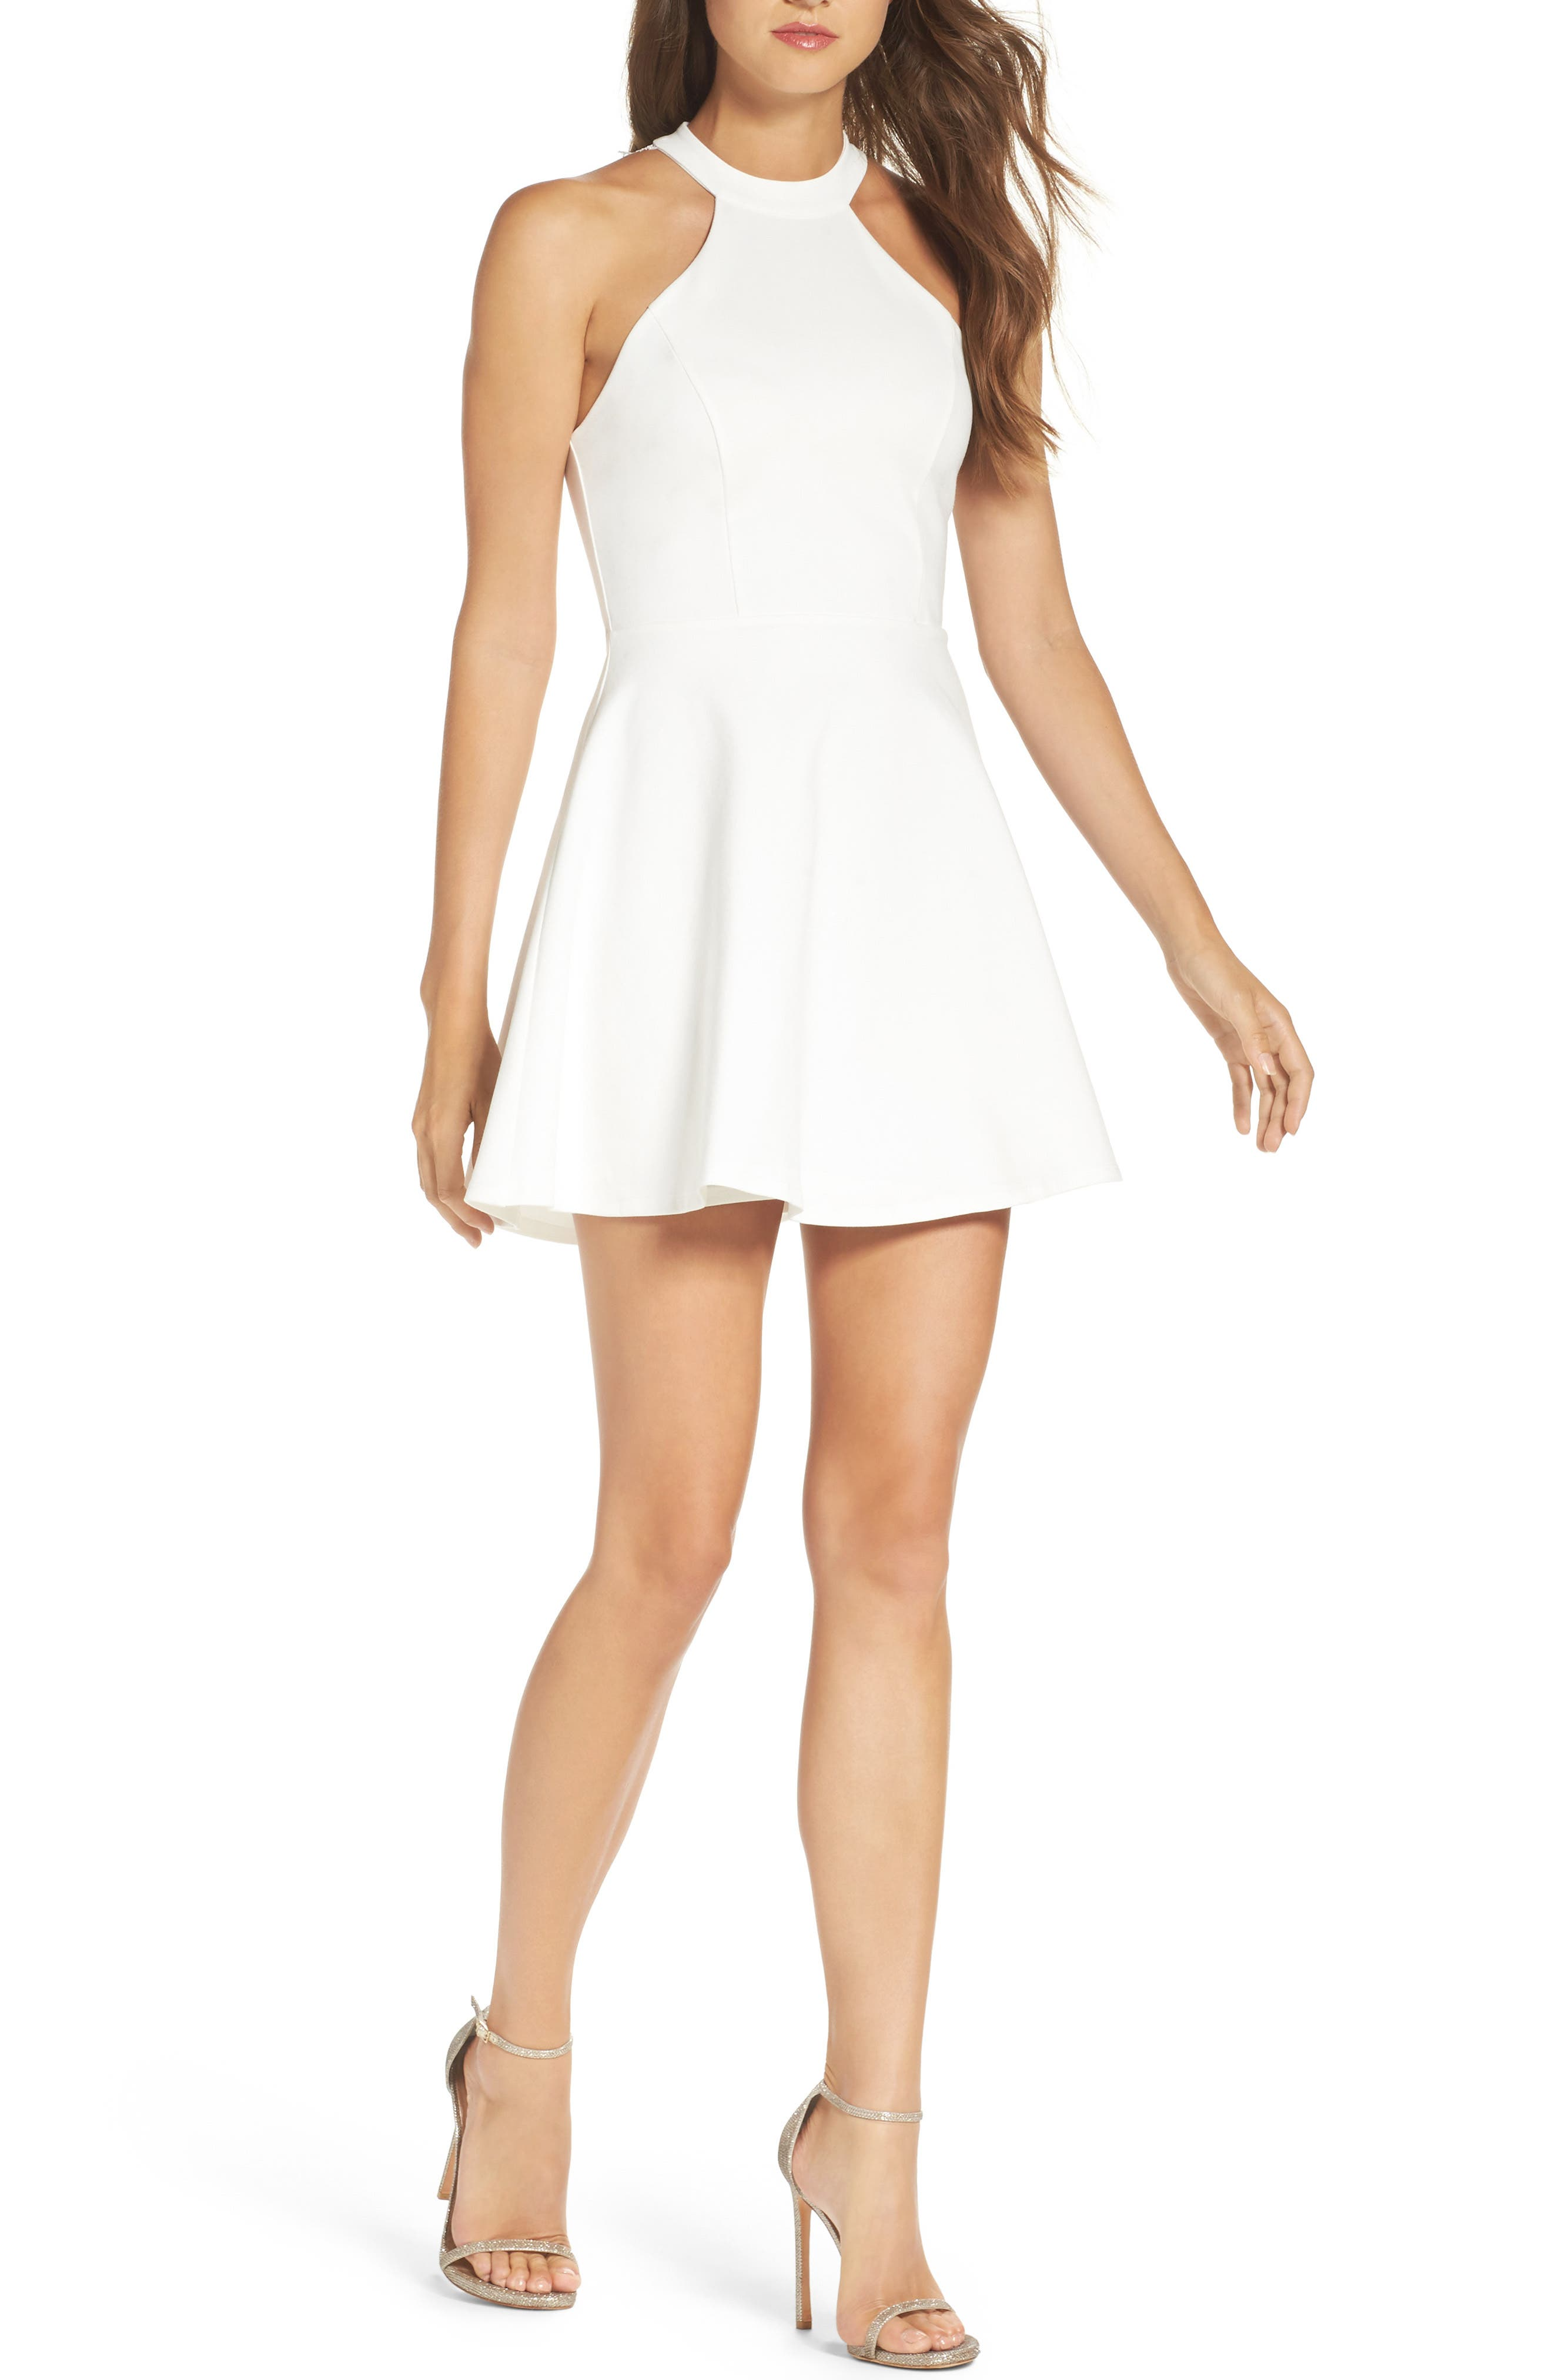 Alternate Image 1 Selected - Lulus Endlessly Alluring Lace Trim Fit & Flare Dress